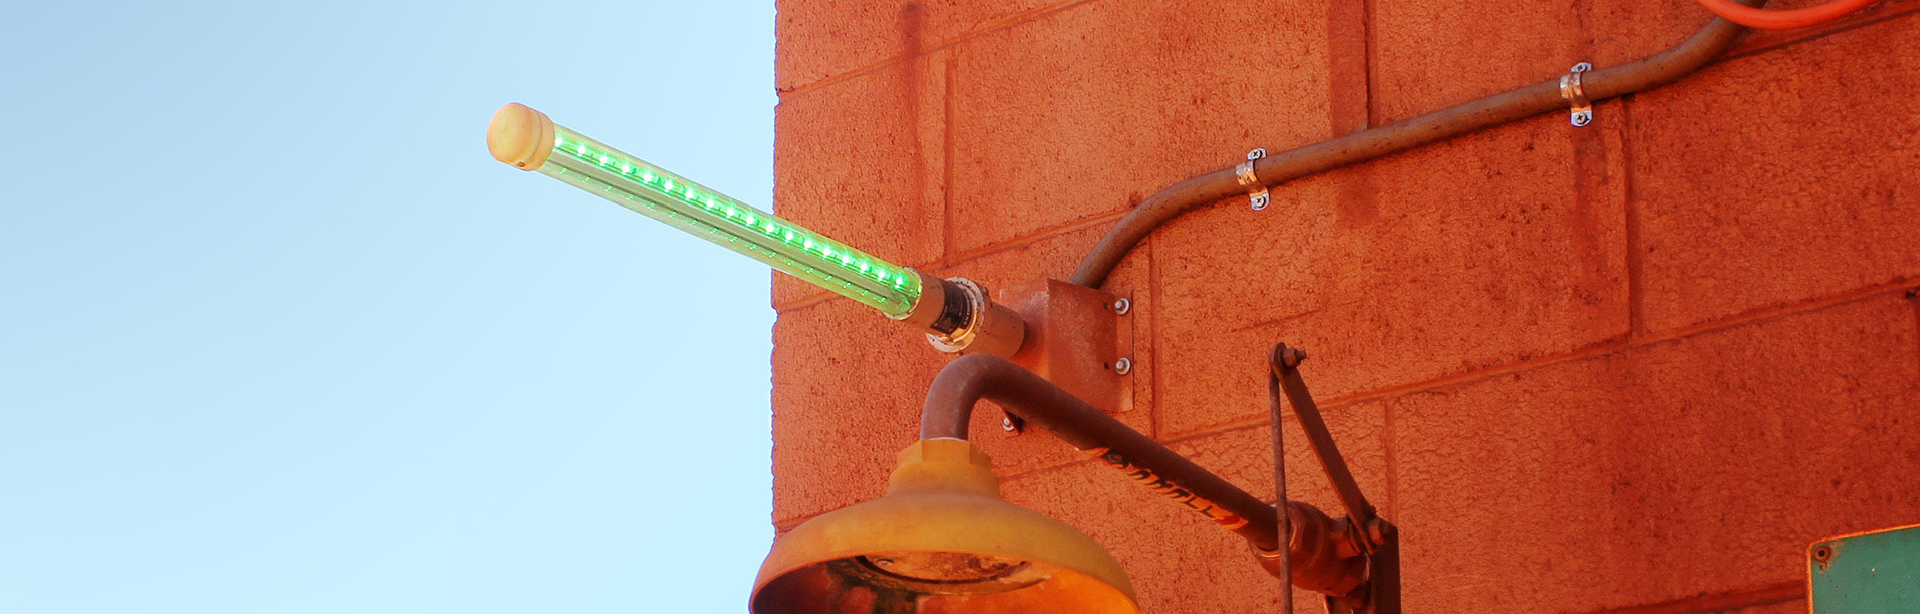 The Wall Mounting Bracket to a Spigot allows spigot mounted lights to be easily installed on any flat surface.